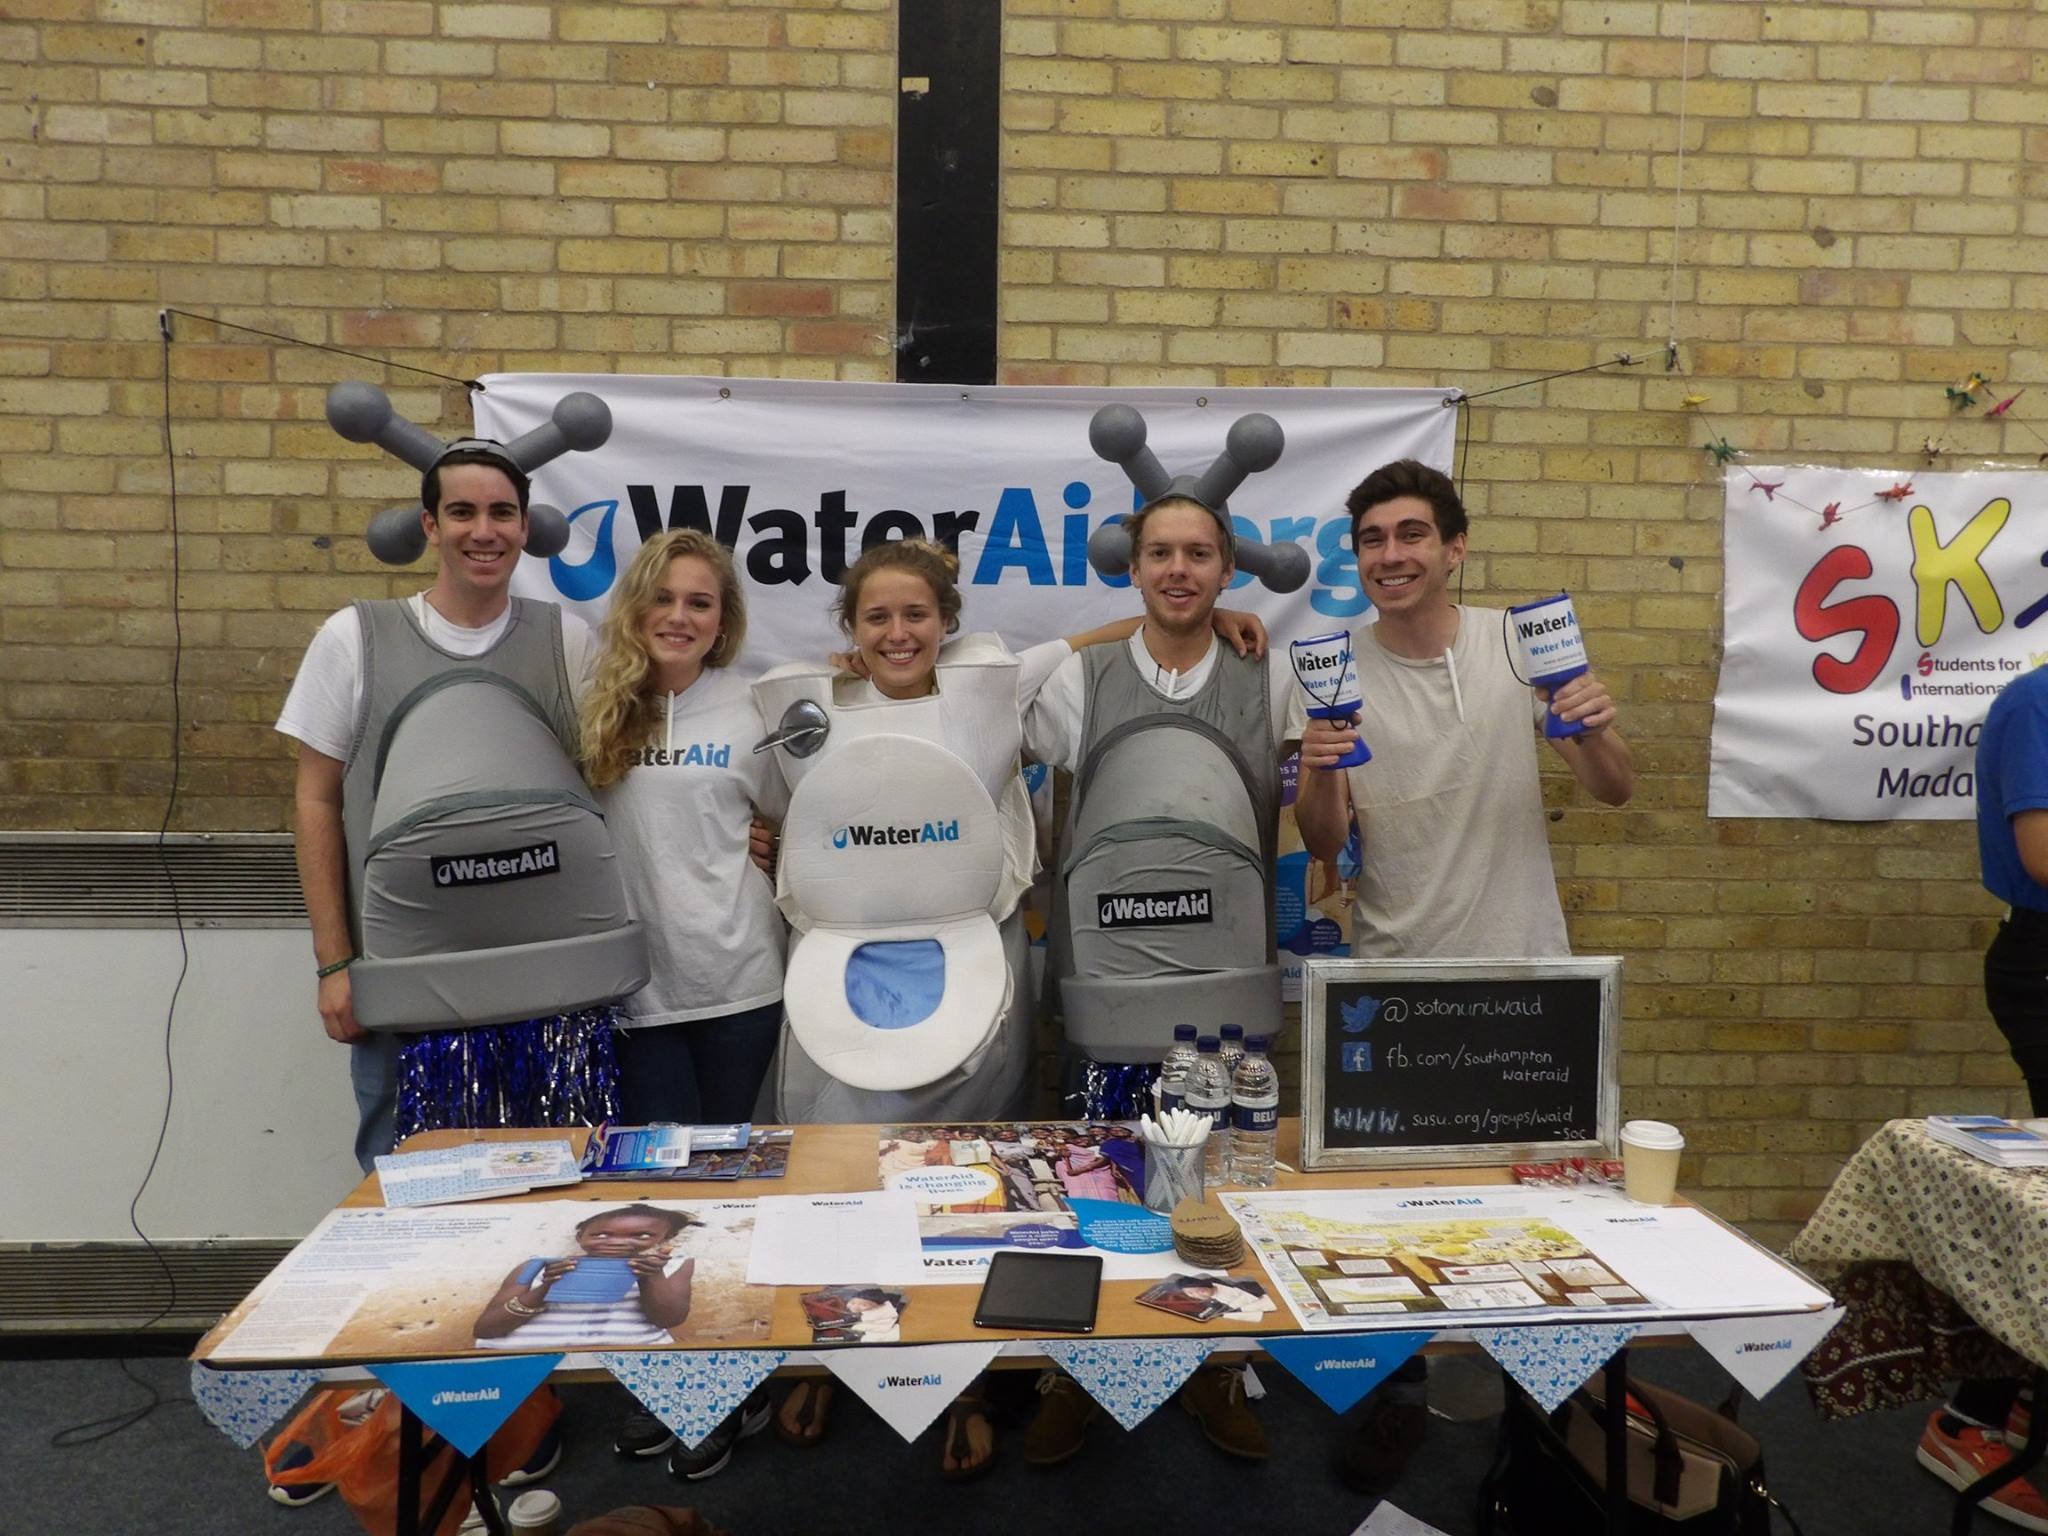 The WaterAid Society at Southampton University